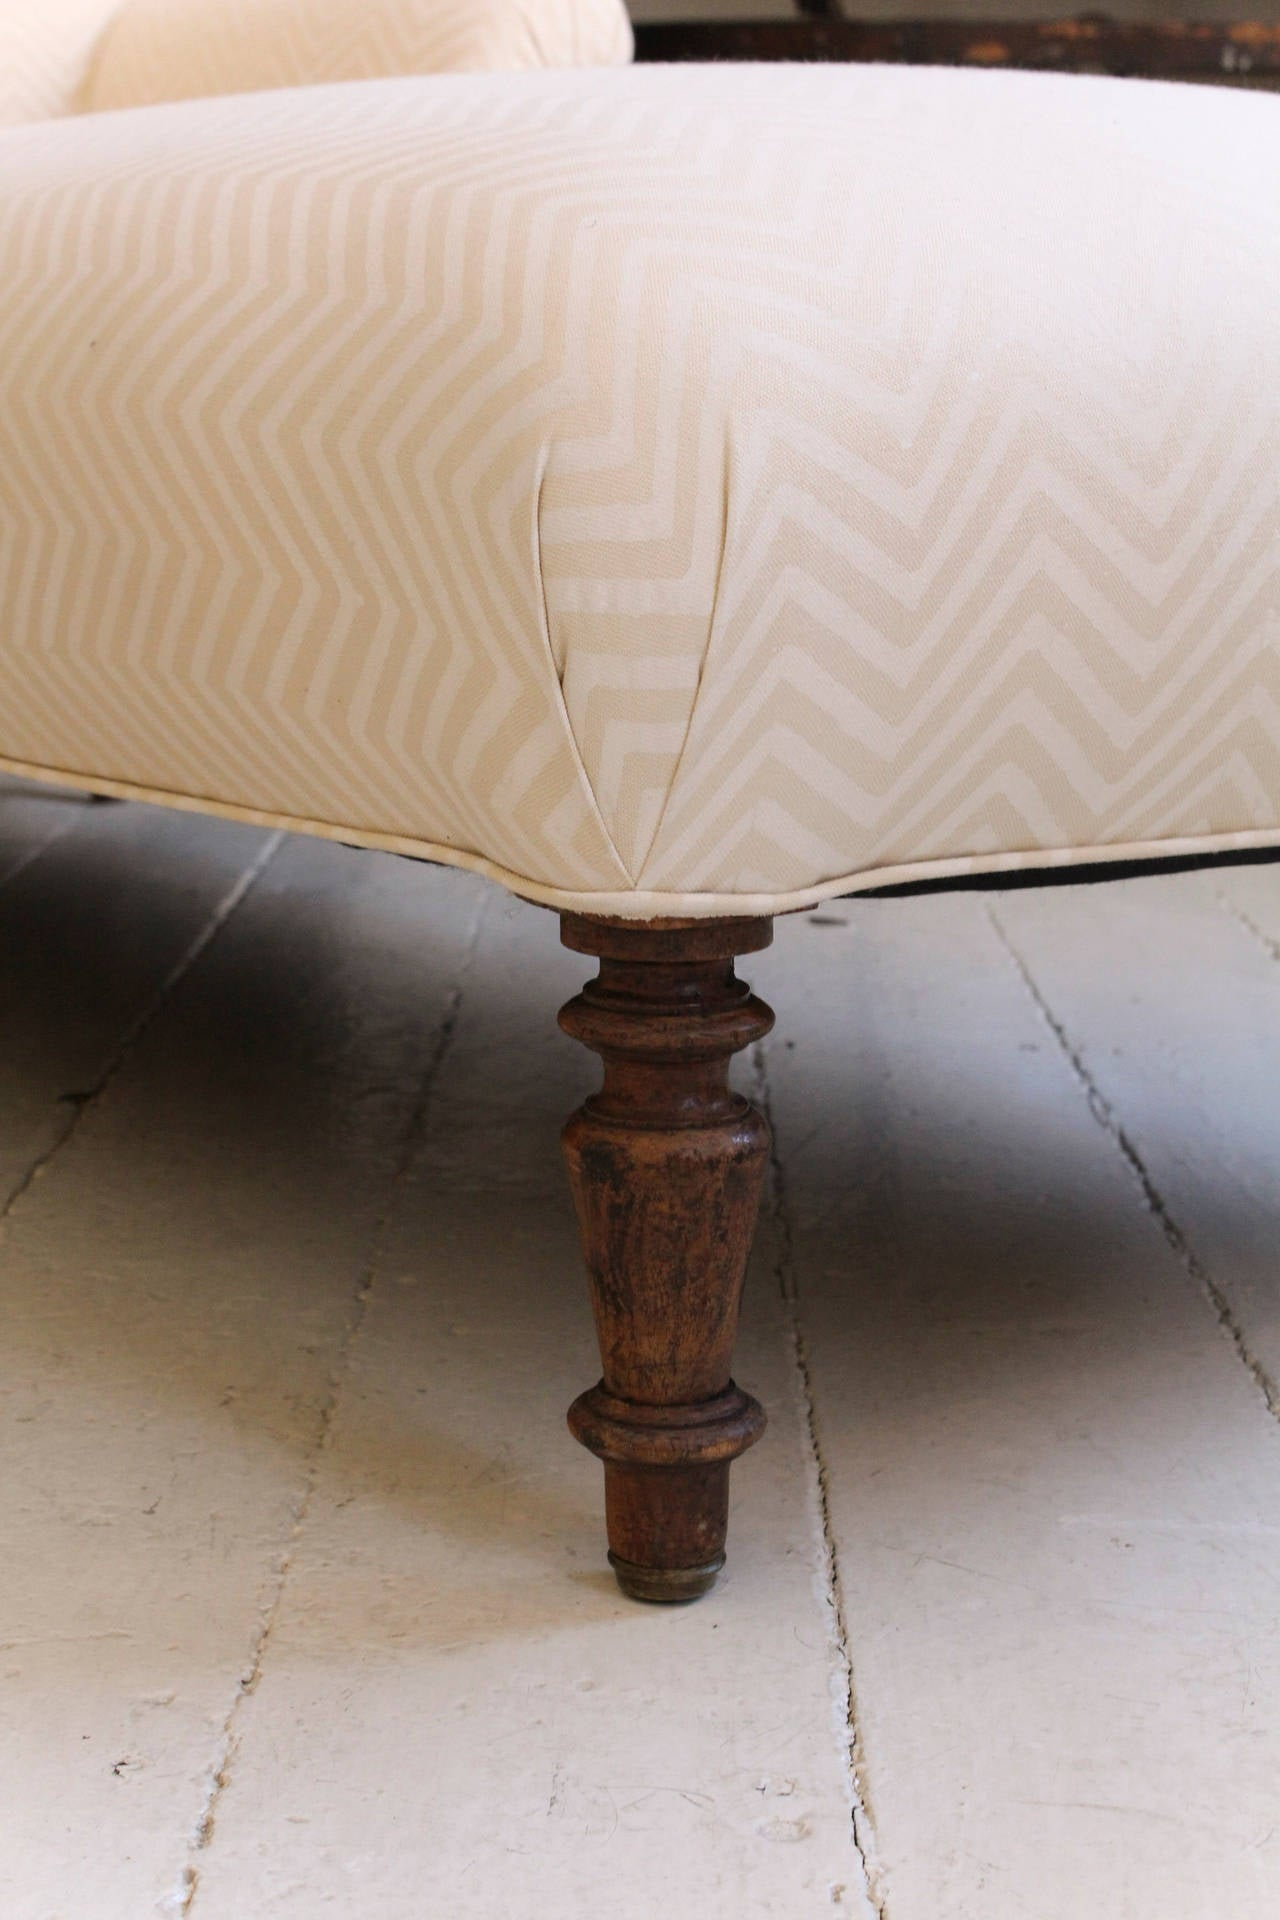 Napoleon iii chaise longue at 1stdibs for Chaise longue 5 plazas